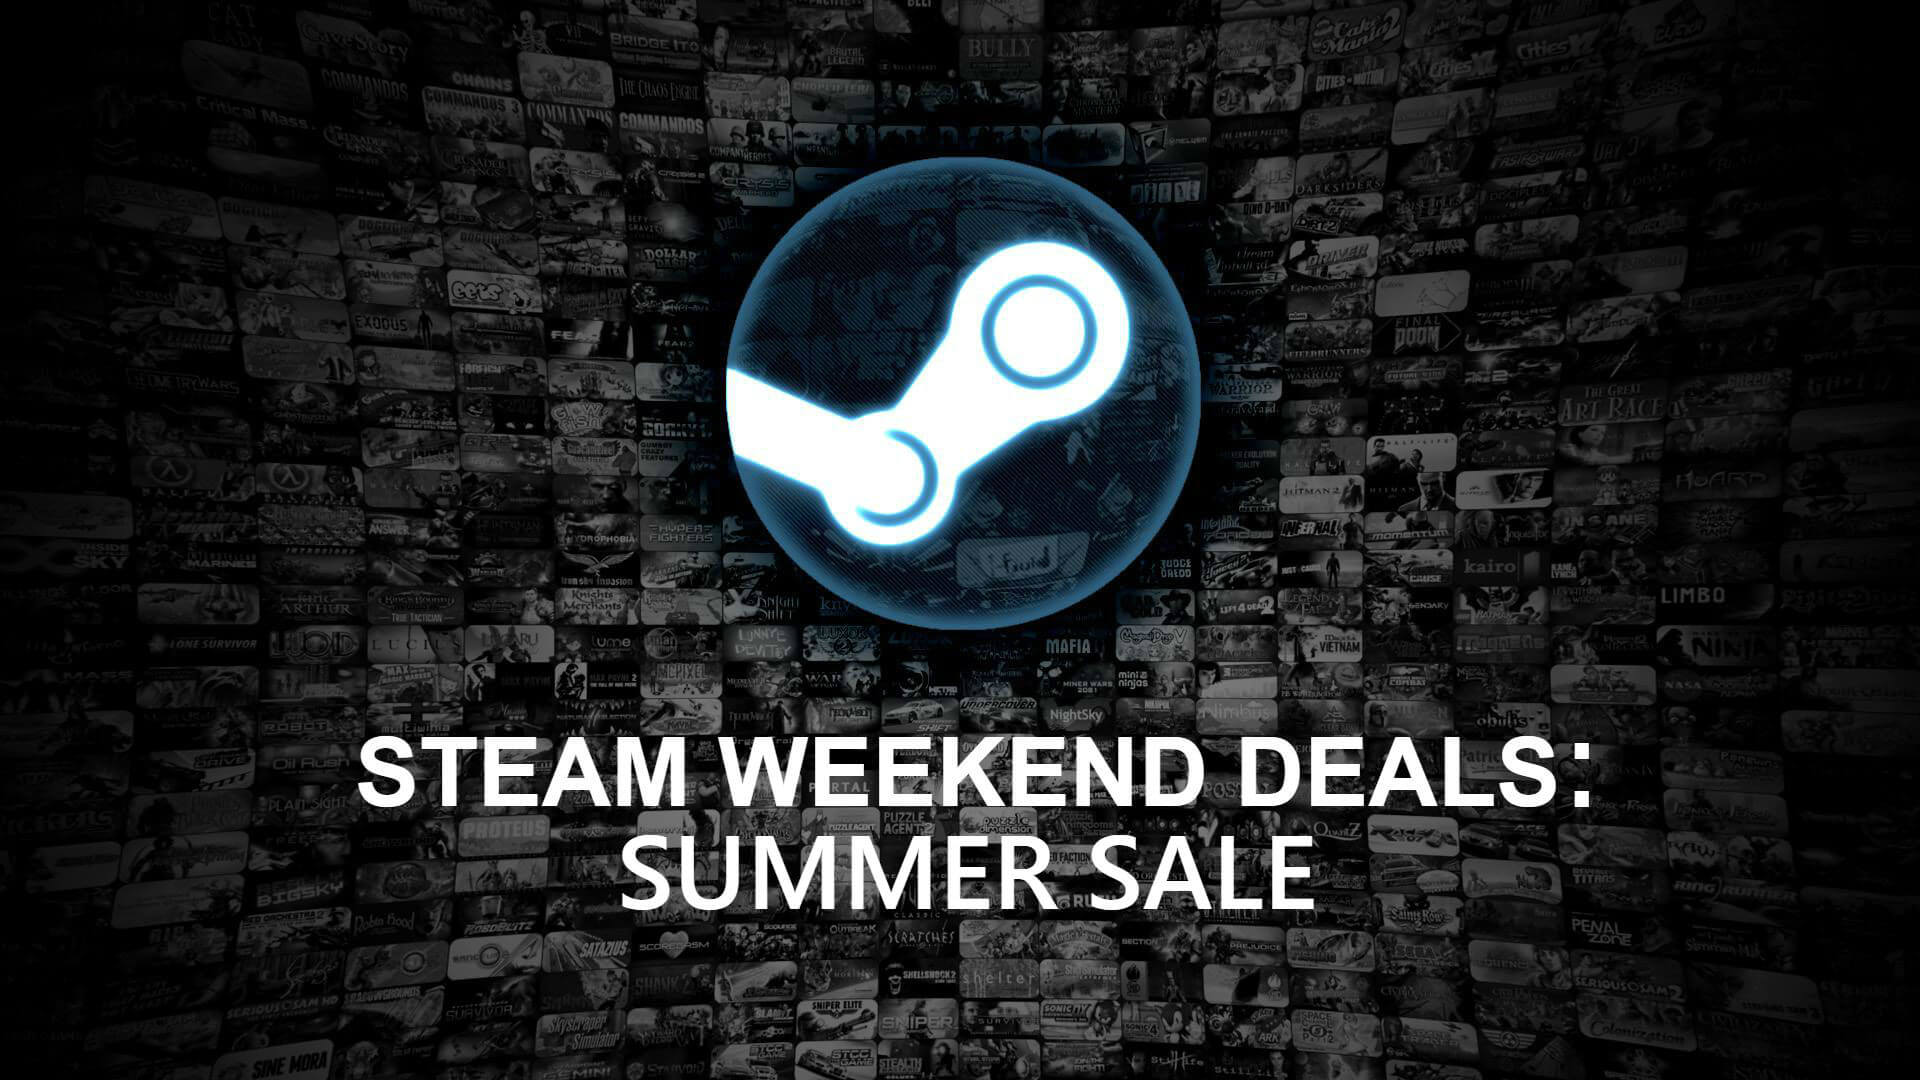 Top Steam Sales of the Weekend - Summer Sale